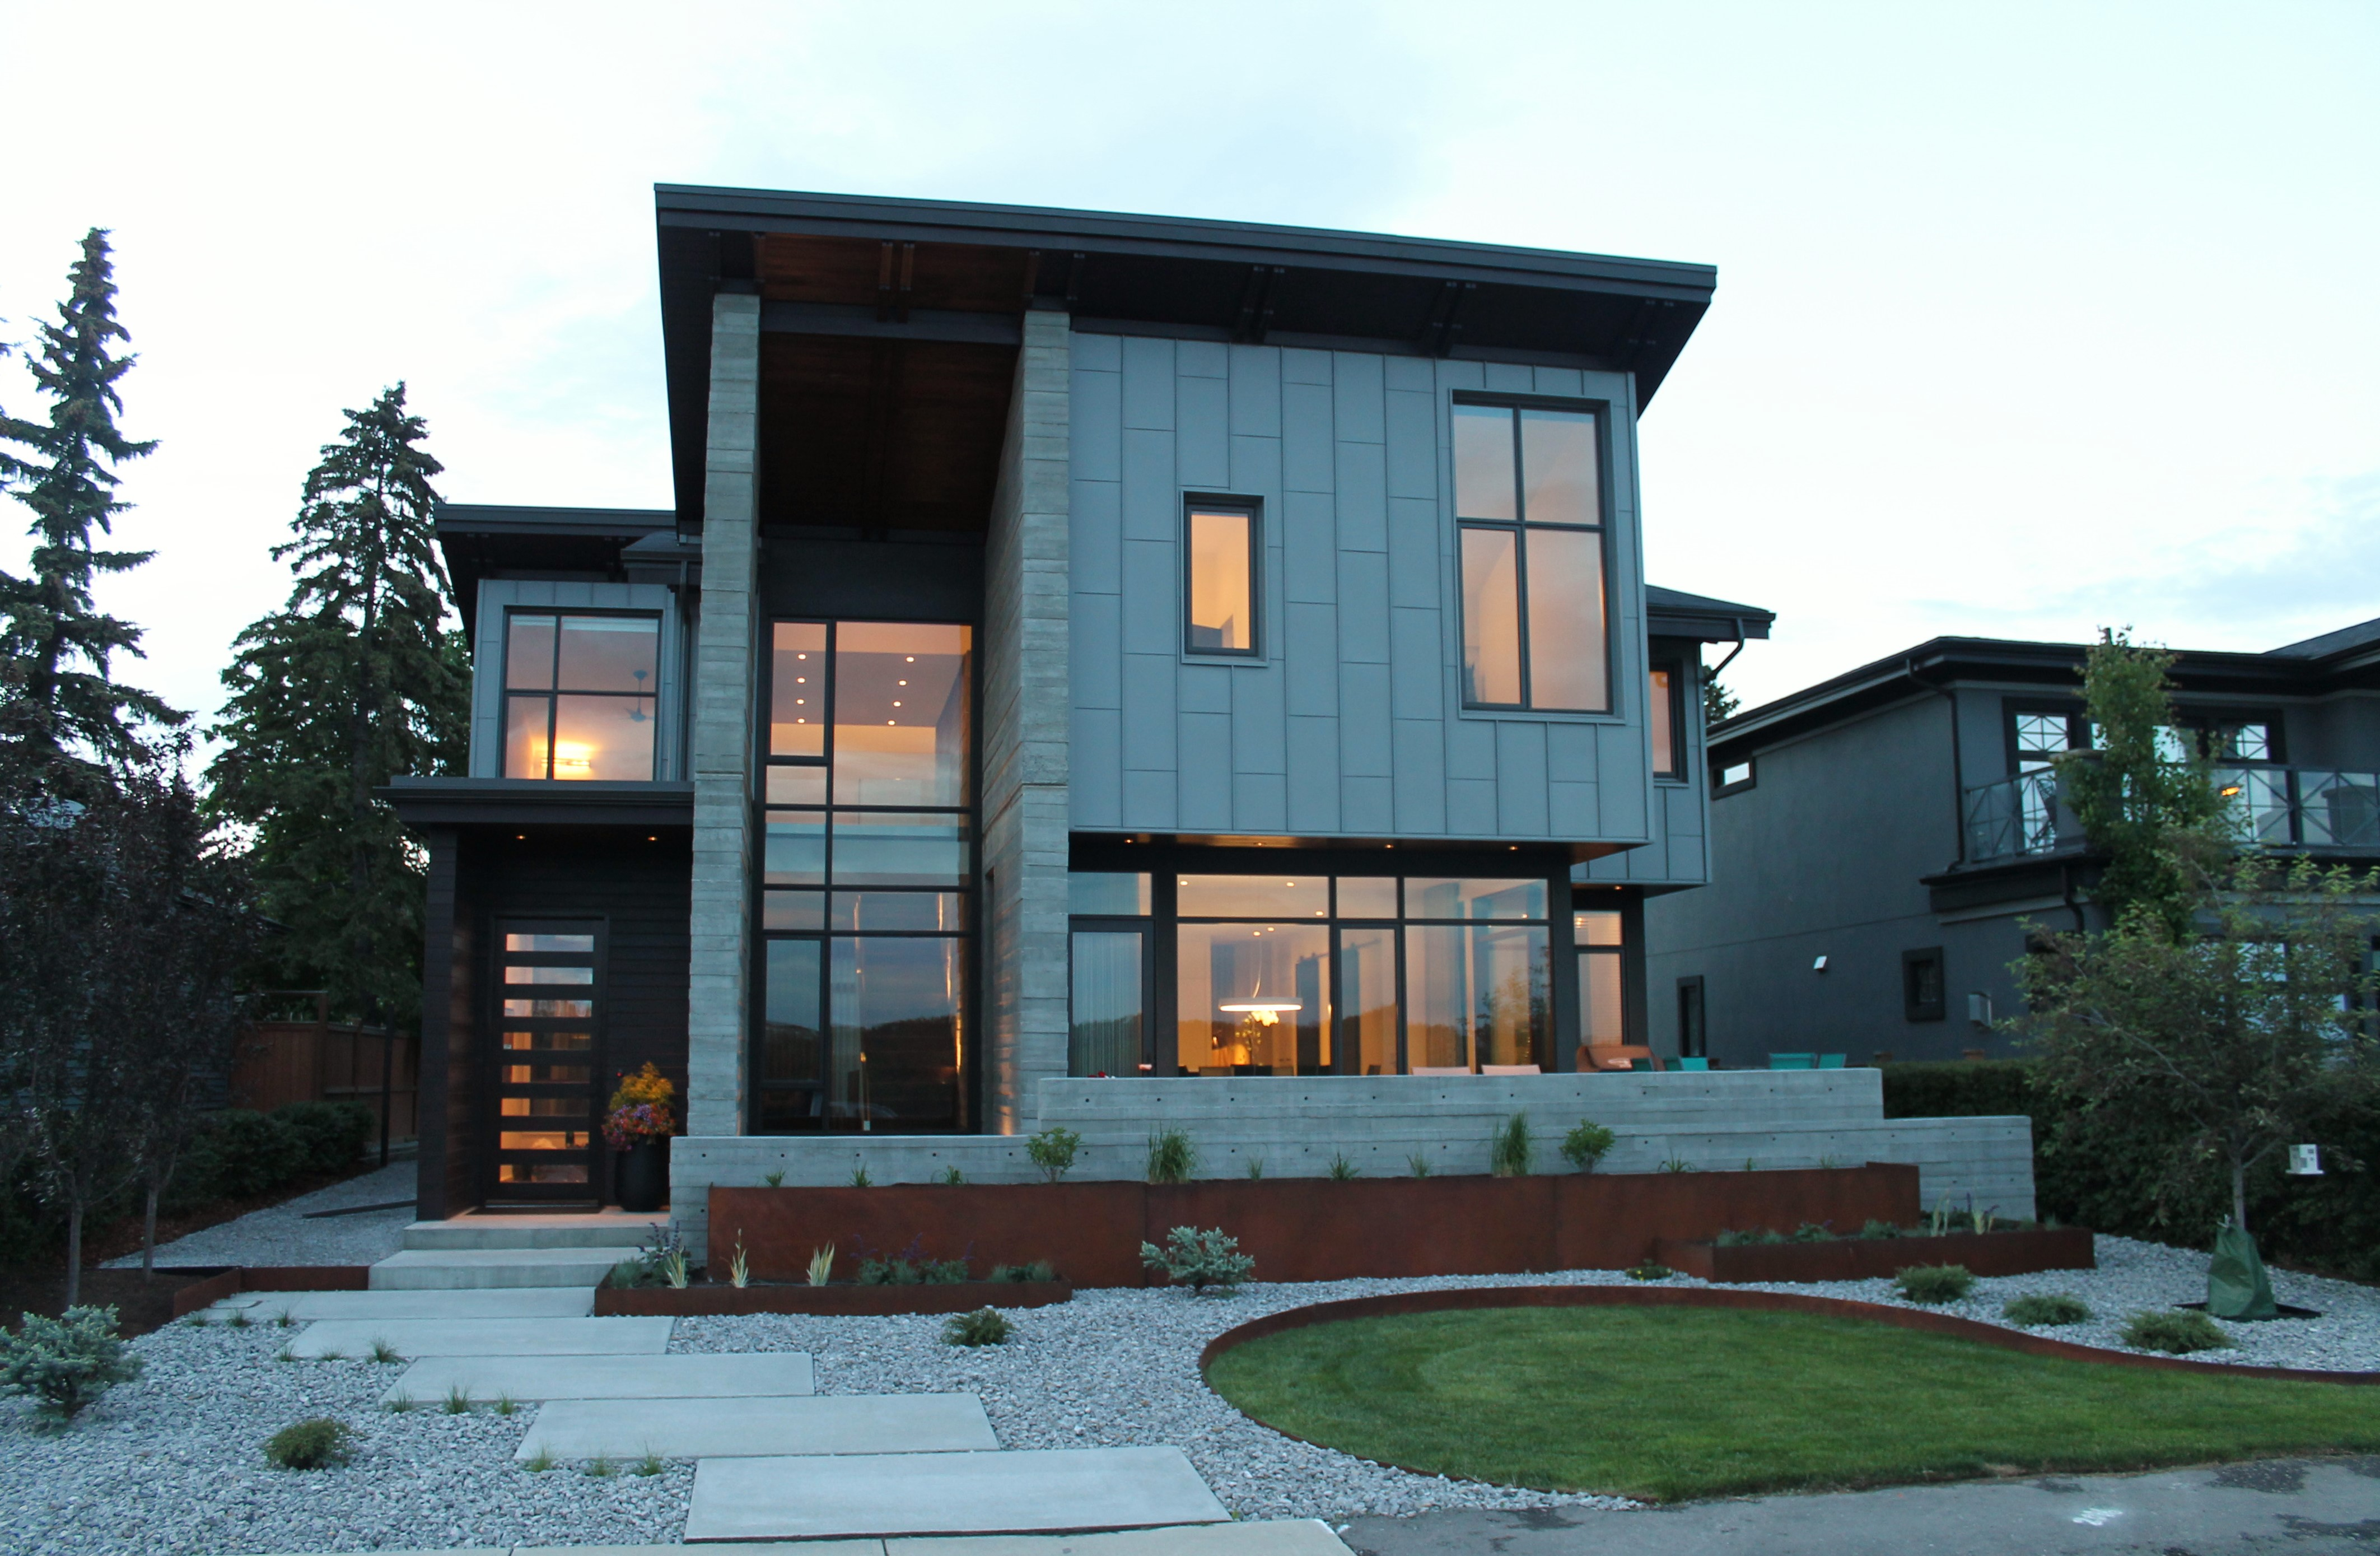 B Modern Calgary Modern Architecture 43 Design Society Brings Home Tours To